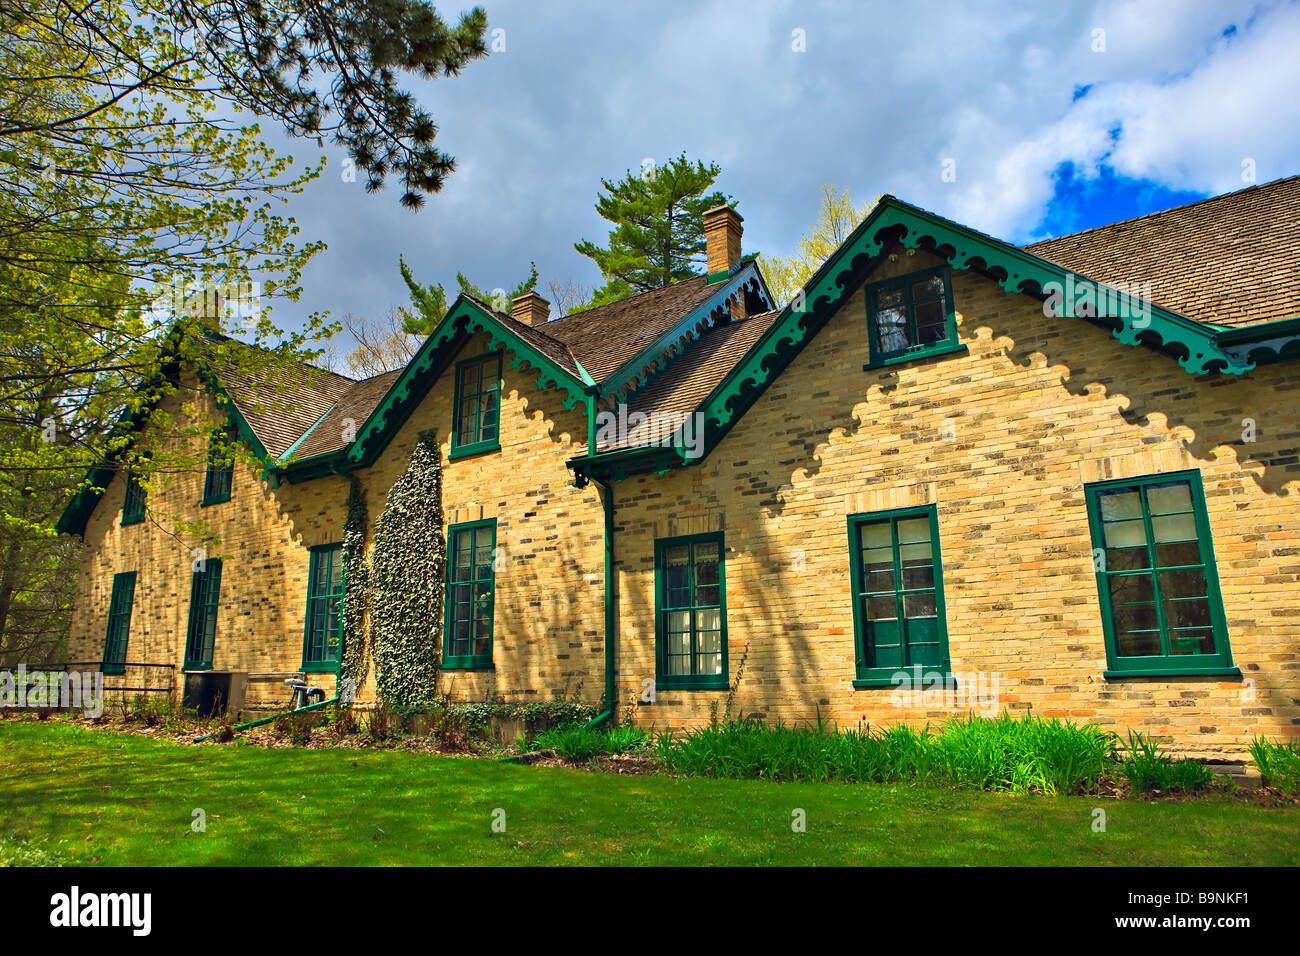 Woodside National Historic Site,the childhood home of Canada's longest serving prime minister William Lyon Mackenzie - Stock Image